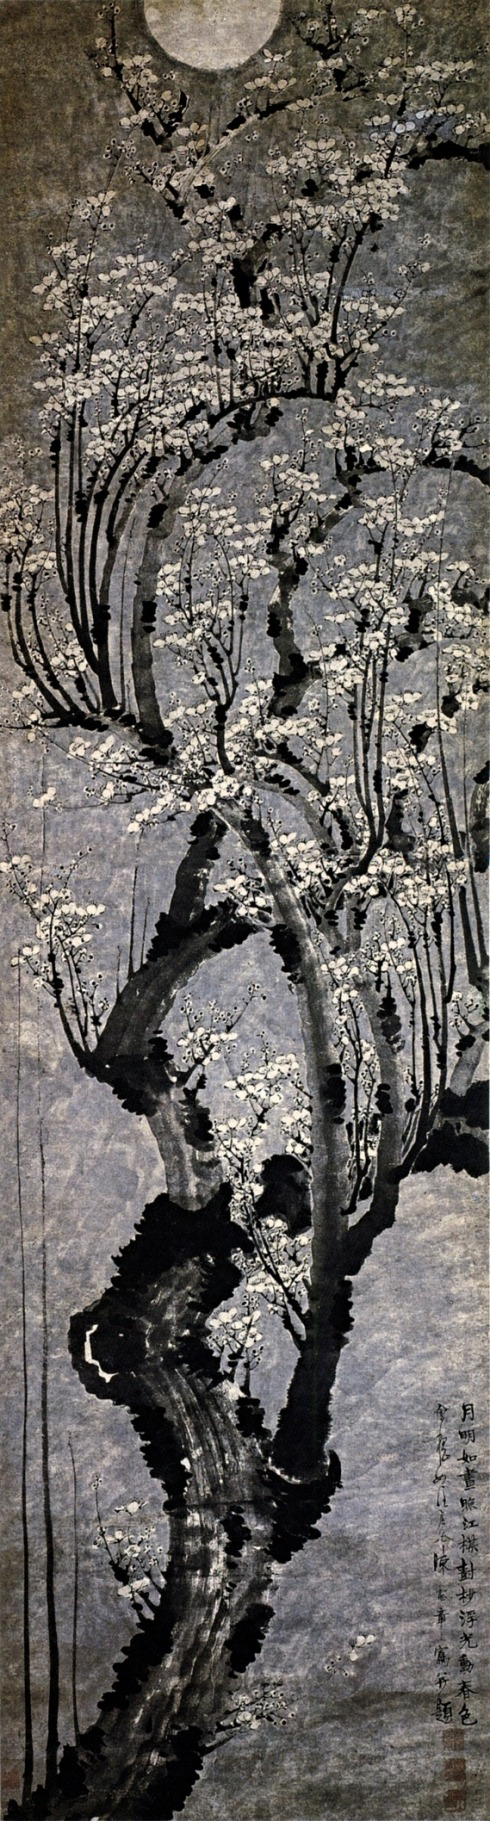 Plum Blossoms, hanging scroll, ink on paper